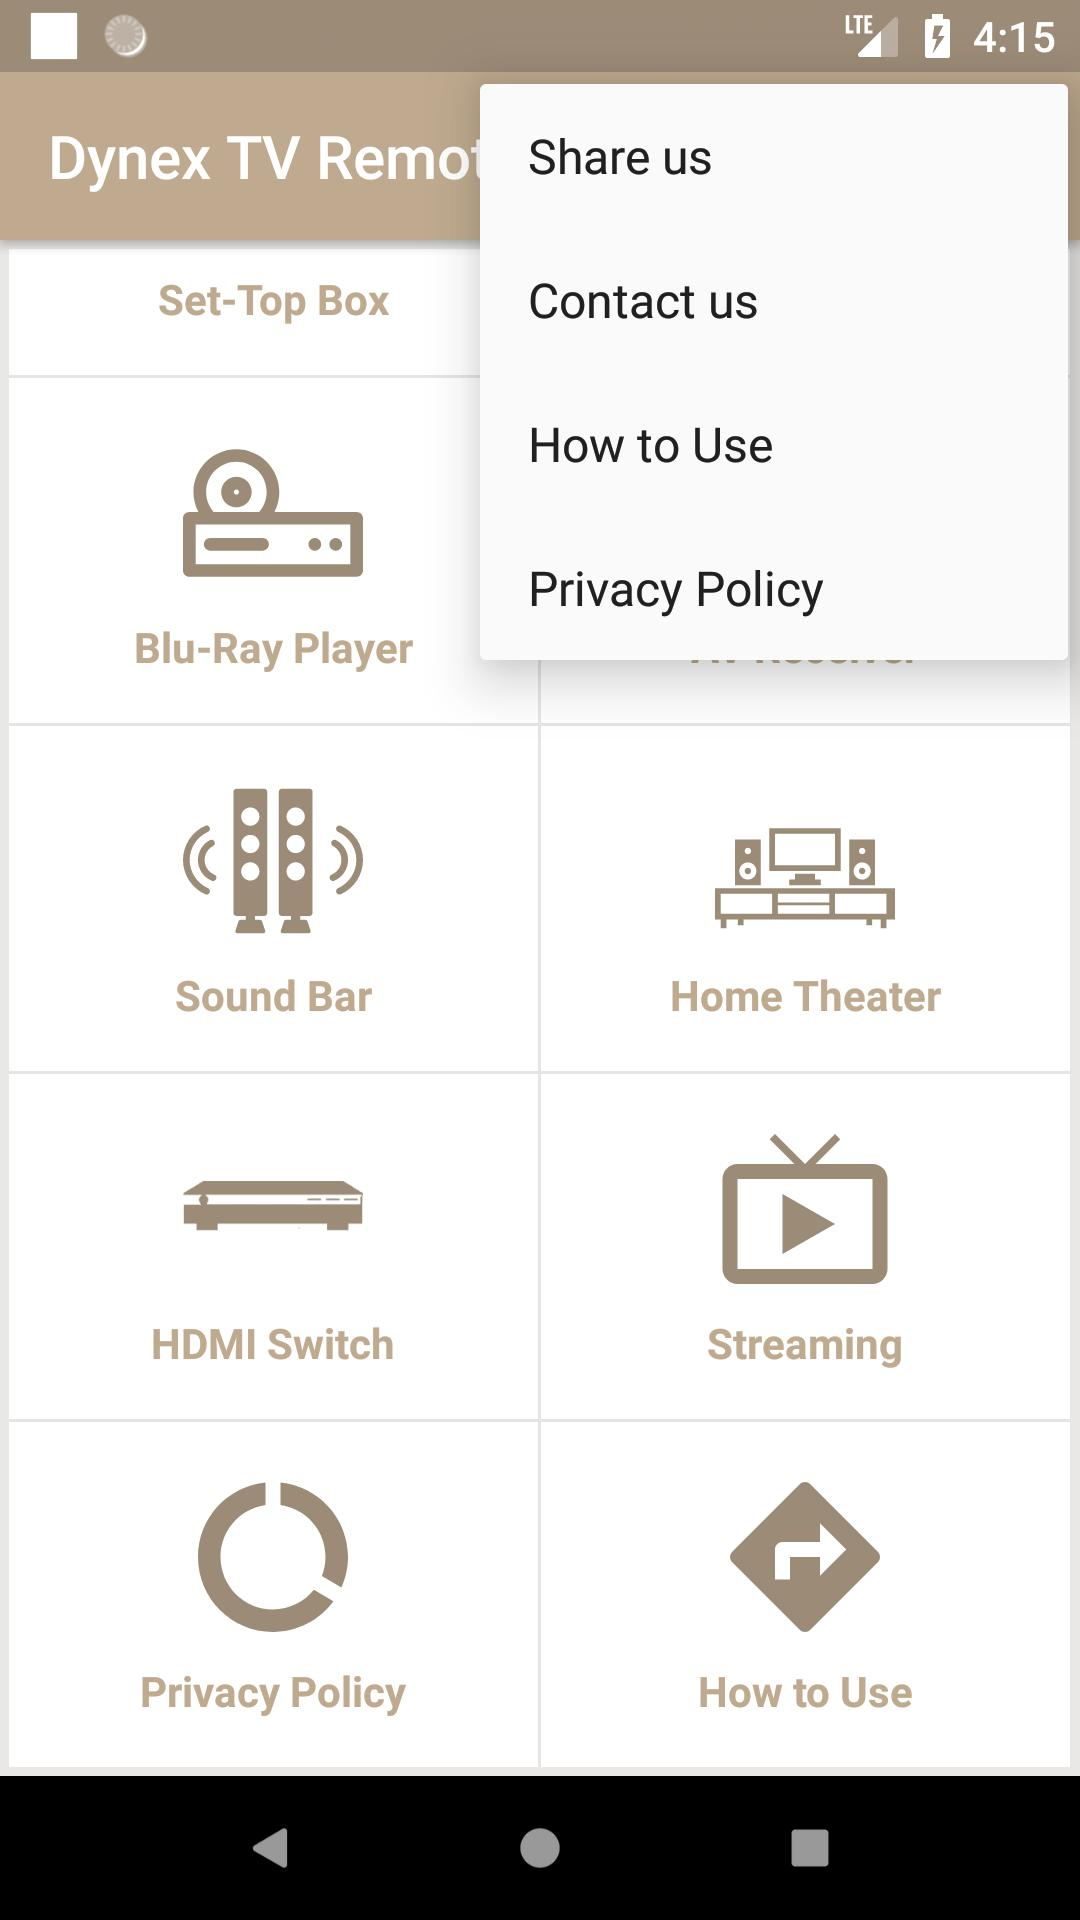 Dynex TV Remote for Android - APK Download